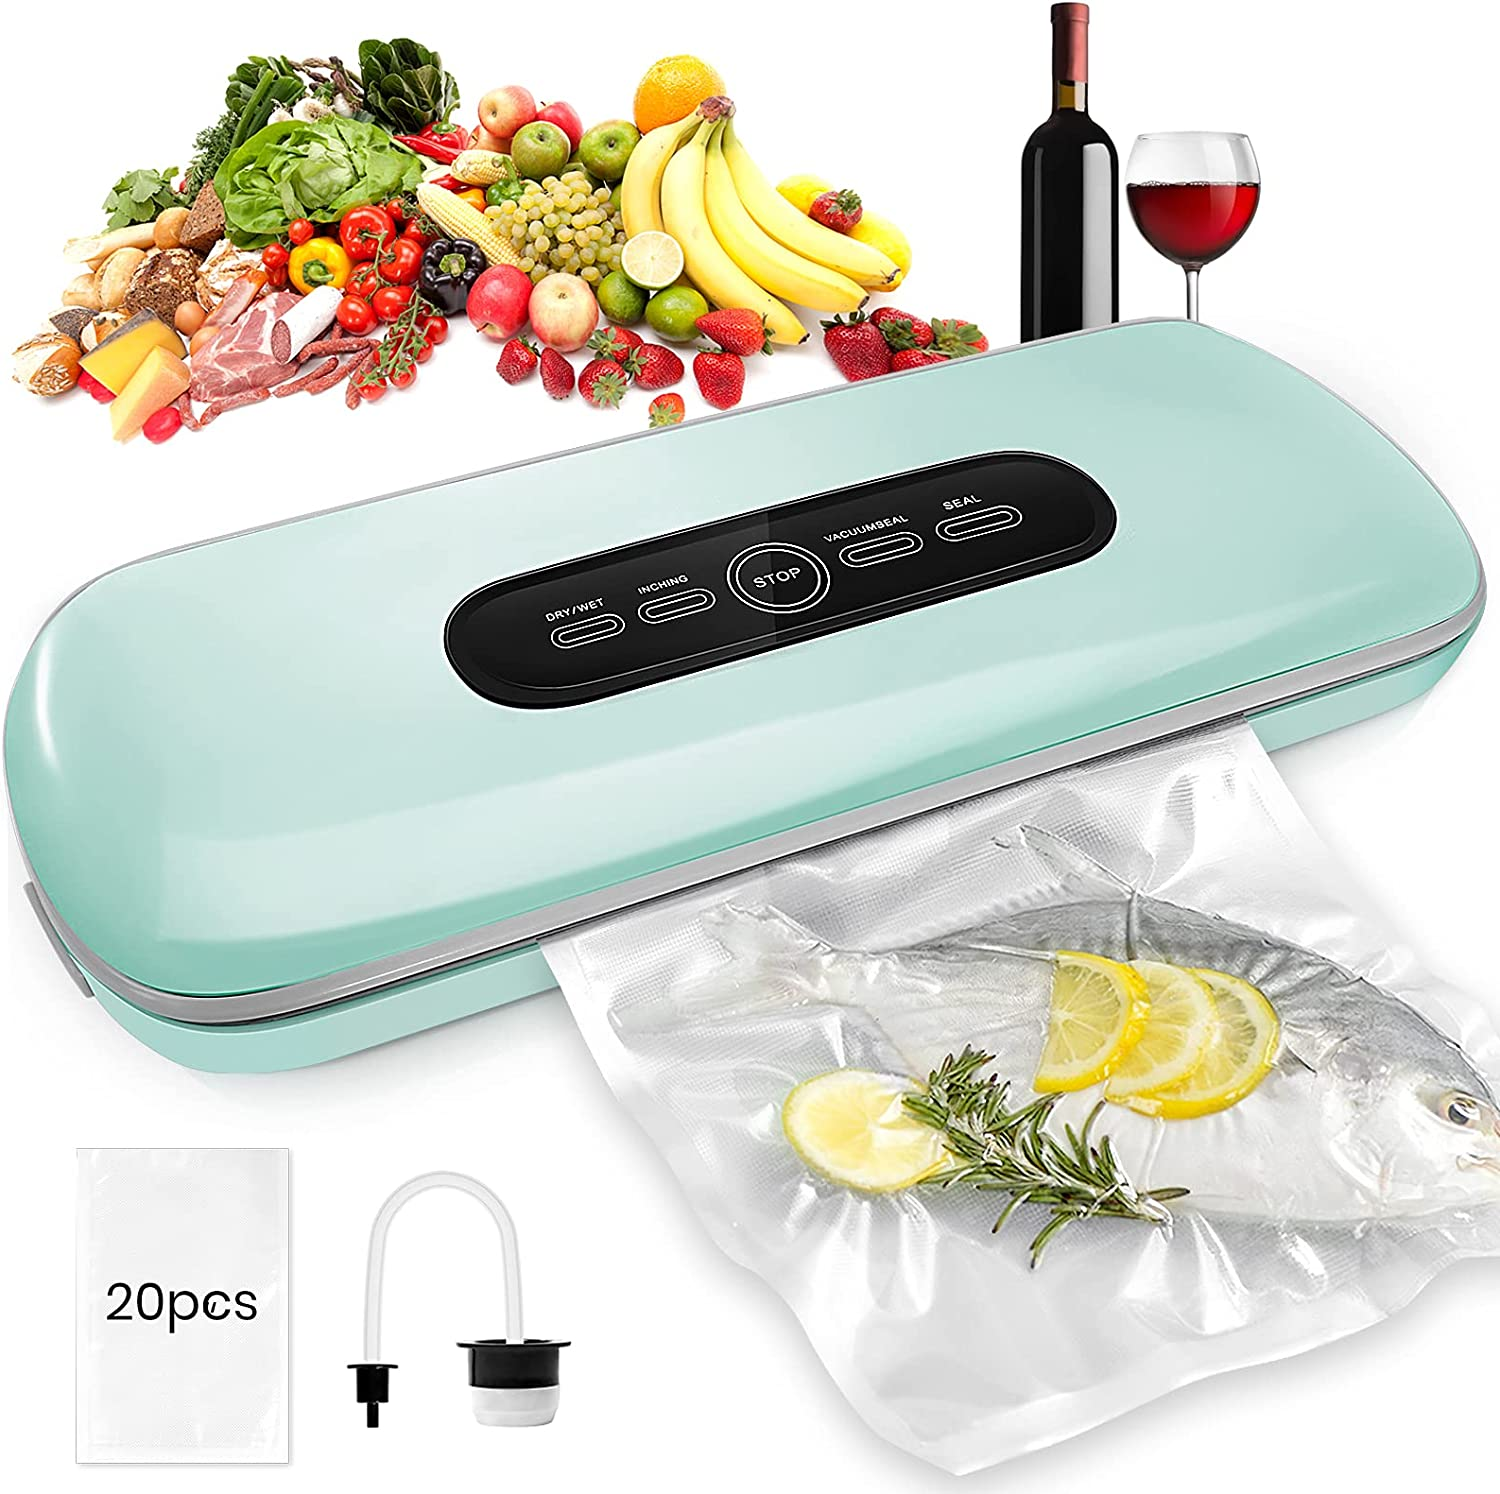 Vacuum Sealer Machine, Chansic Automatic Food Saver Vacuum sealer Machine With Dry&Moist Modes,Led Indicator,Starter Kit (Vacuum Sealer Bags×20 included), Continuously seal more than 100 bags